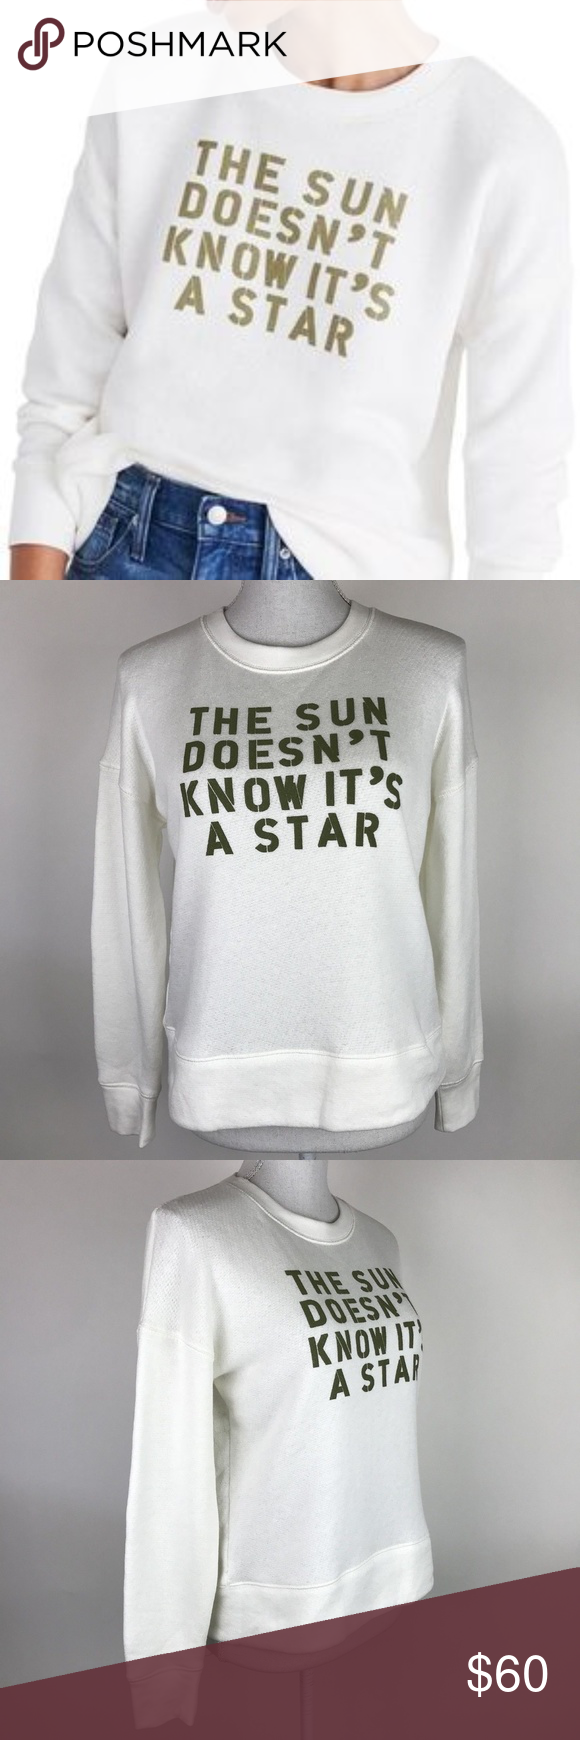 ba093311c8a Madewell Sun Doesn't Know It's a Star Sweatshirt Miles by Madewell 'The Sun  Doesn't Know It's a Star' pullover sweater in ivory with olive green  lettering ...